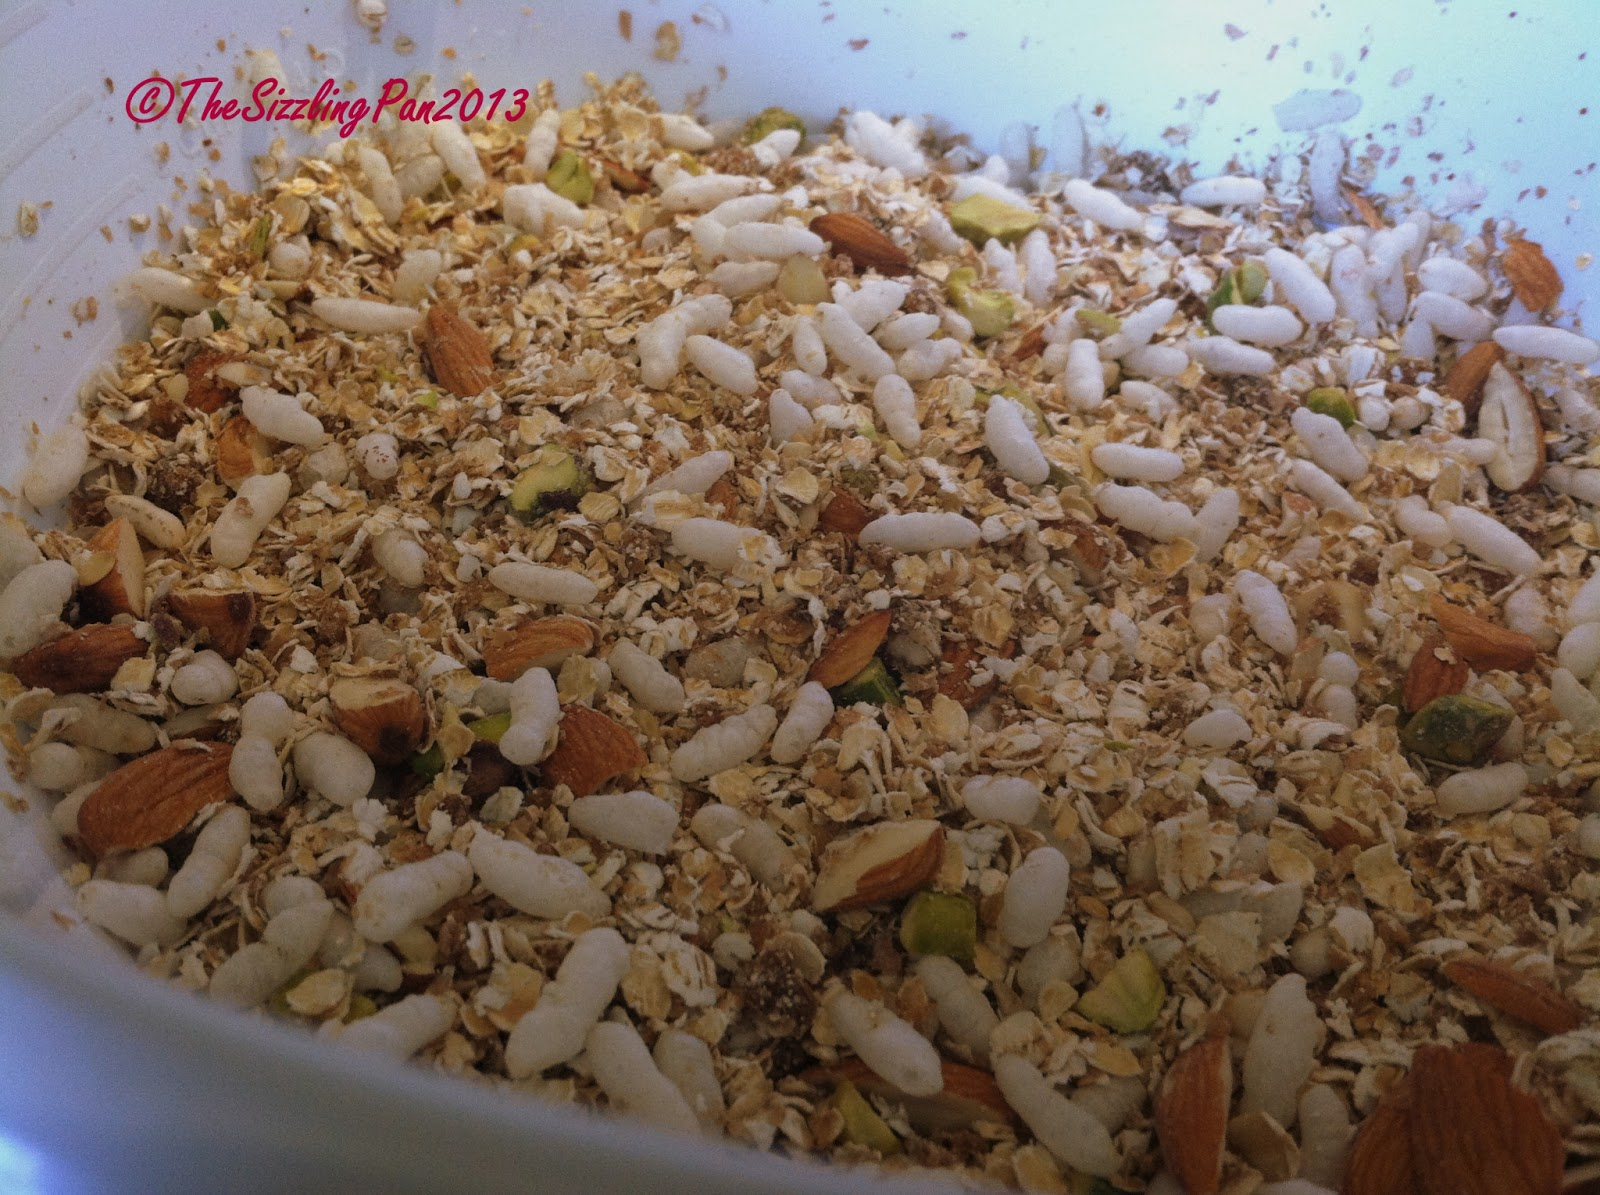 The Sizzling Pan: Homemade 'Oats and Nuts' Granola/ Cereal